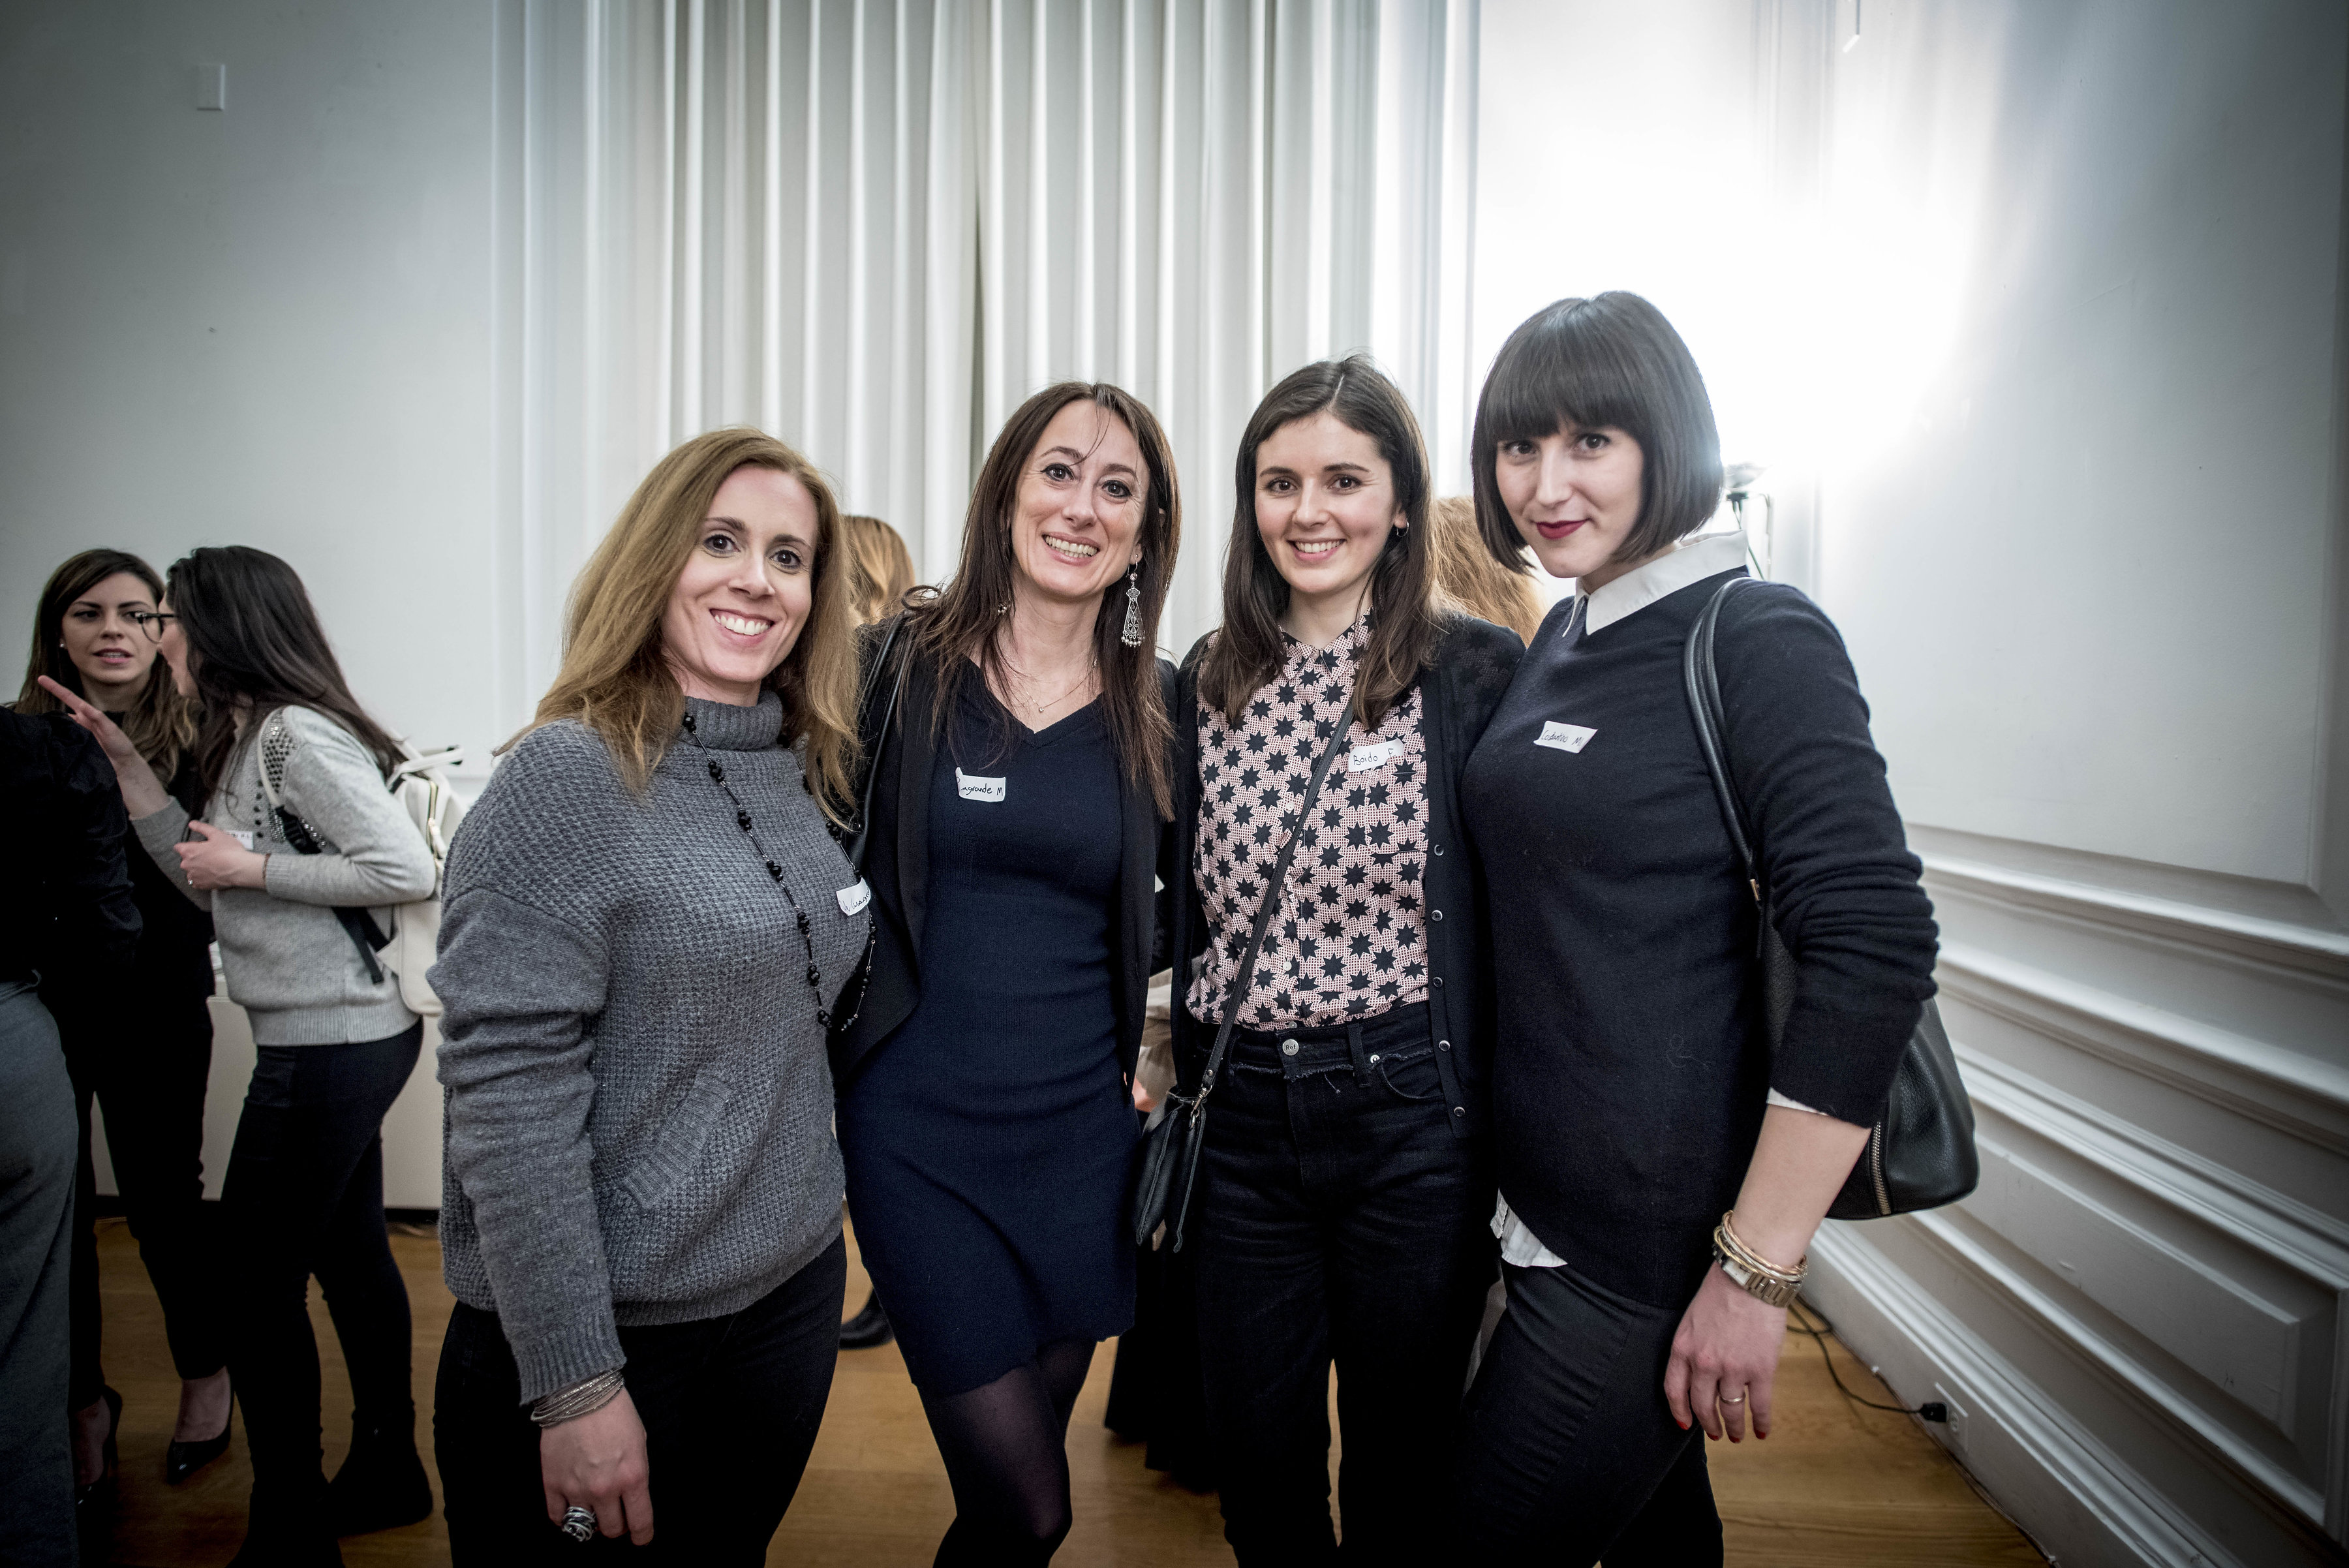 03_12_2018 Evento Consolato New York